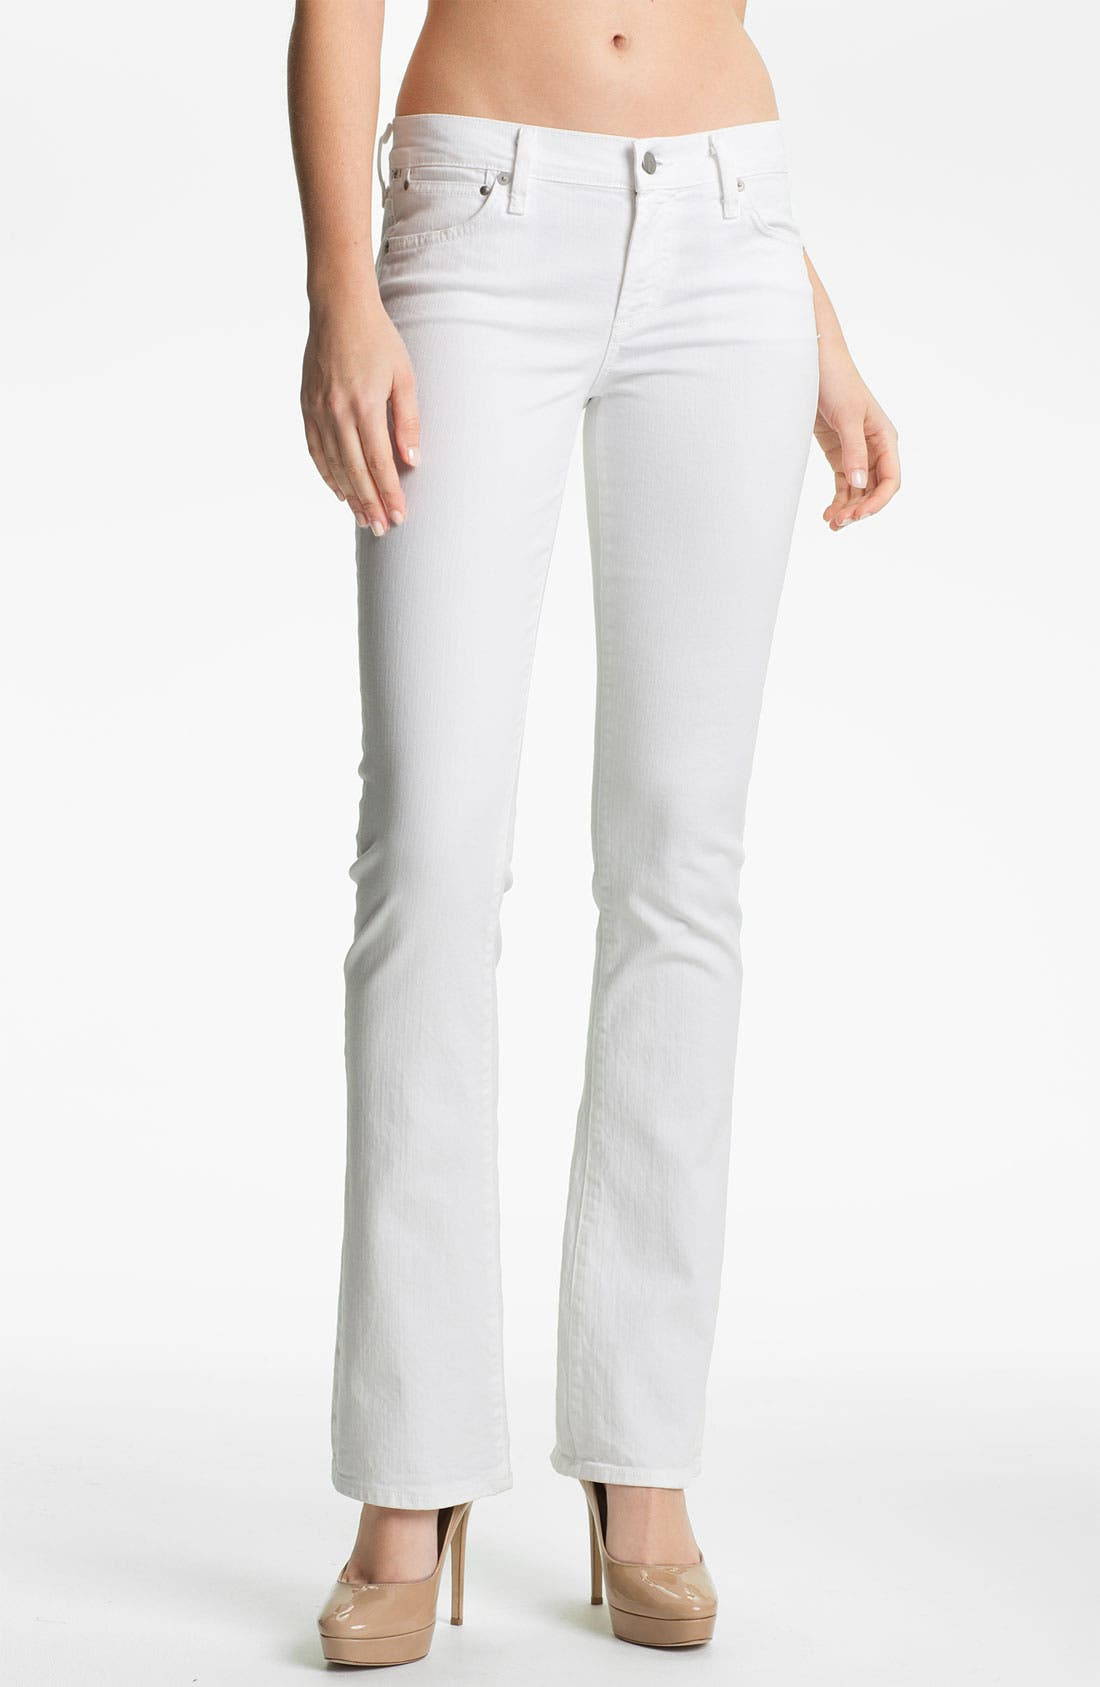 Alternate Image 1 Selected - Citizens of Humanity 'Emmanuelle' Slim Bootcut Jeans (Santorini)